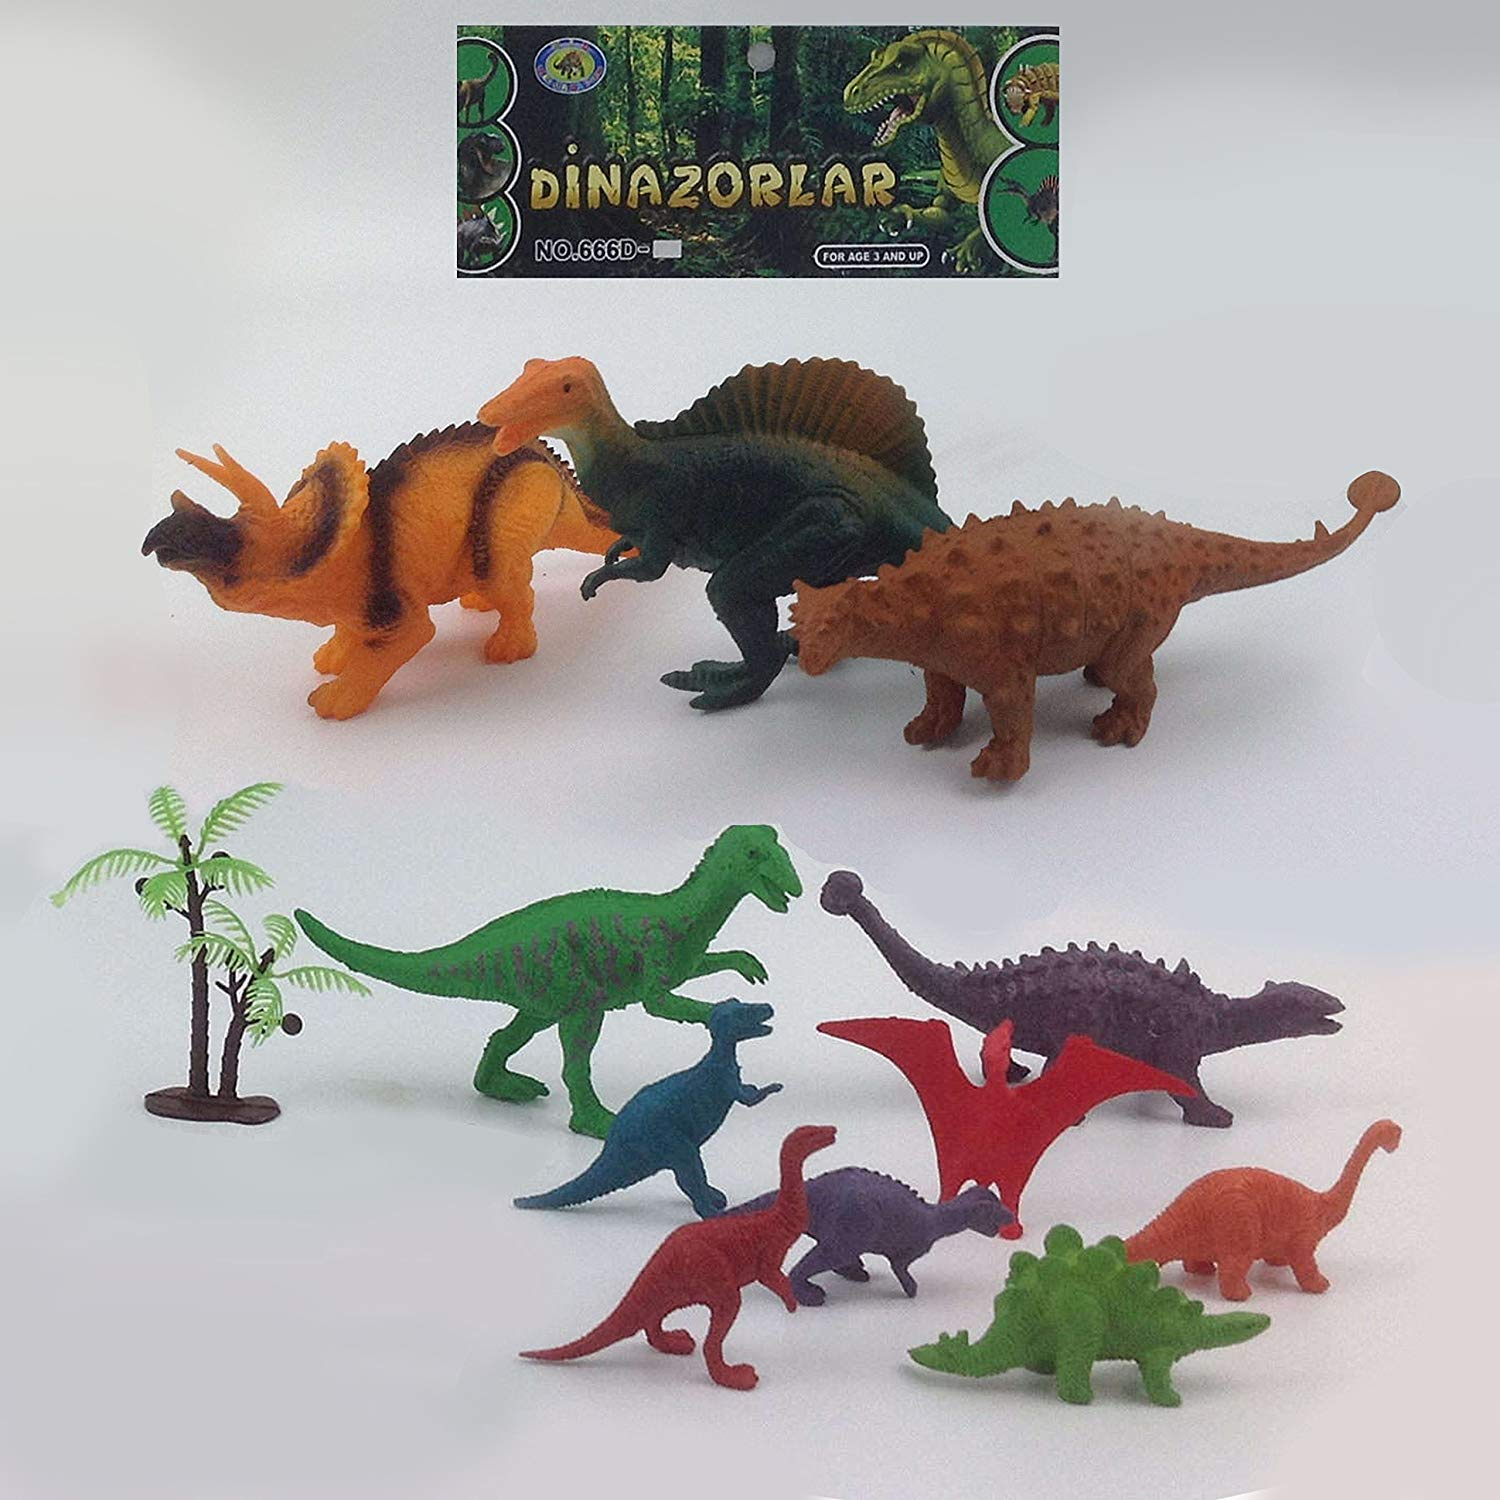 DINOSAUR TIME! Realistic Toy Dinosaur Figures For Cool Kids and Toddler  Education! (T-rex, triceratops, velociraptor, etc) 12 pcs